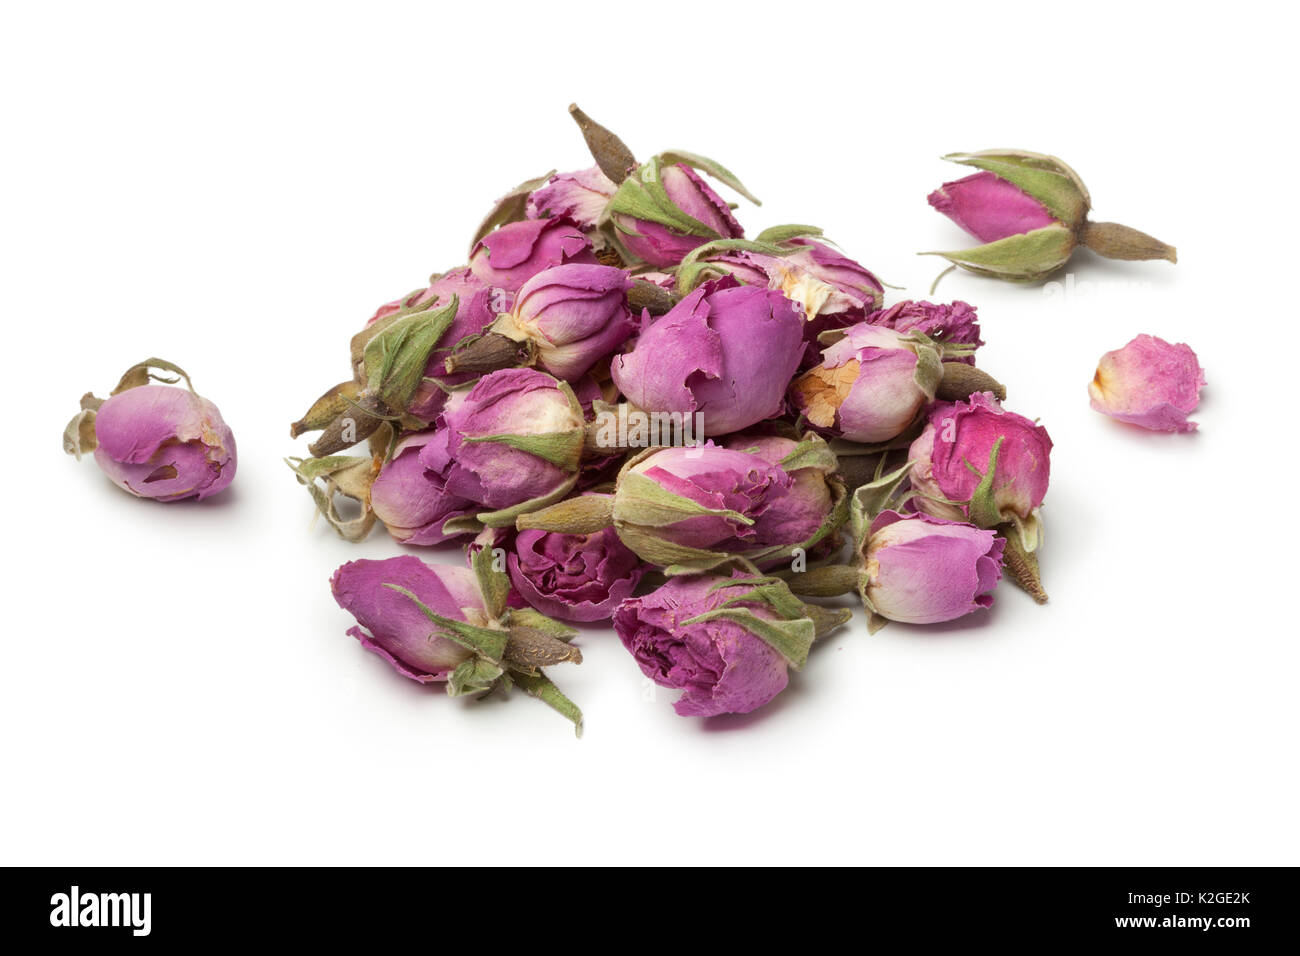 Heap of dried rose buds on white background - Stock Image